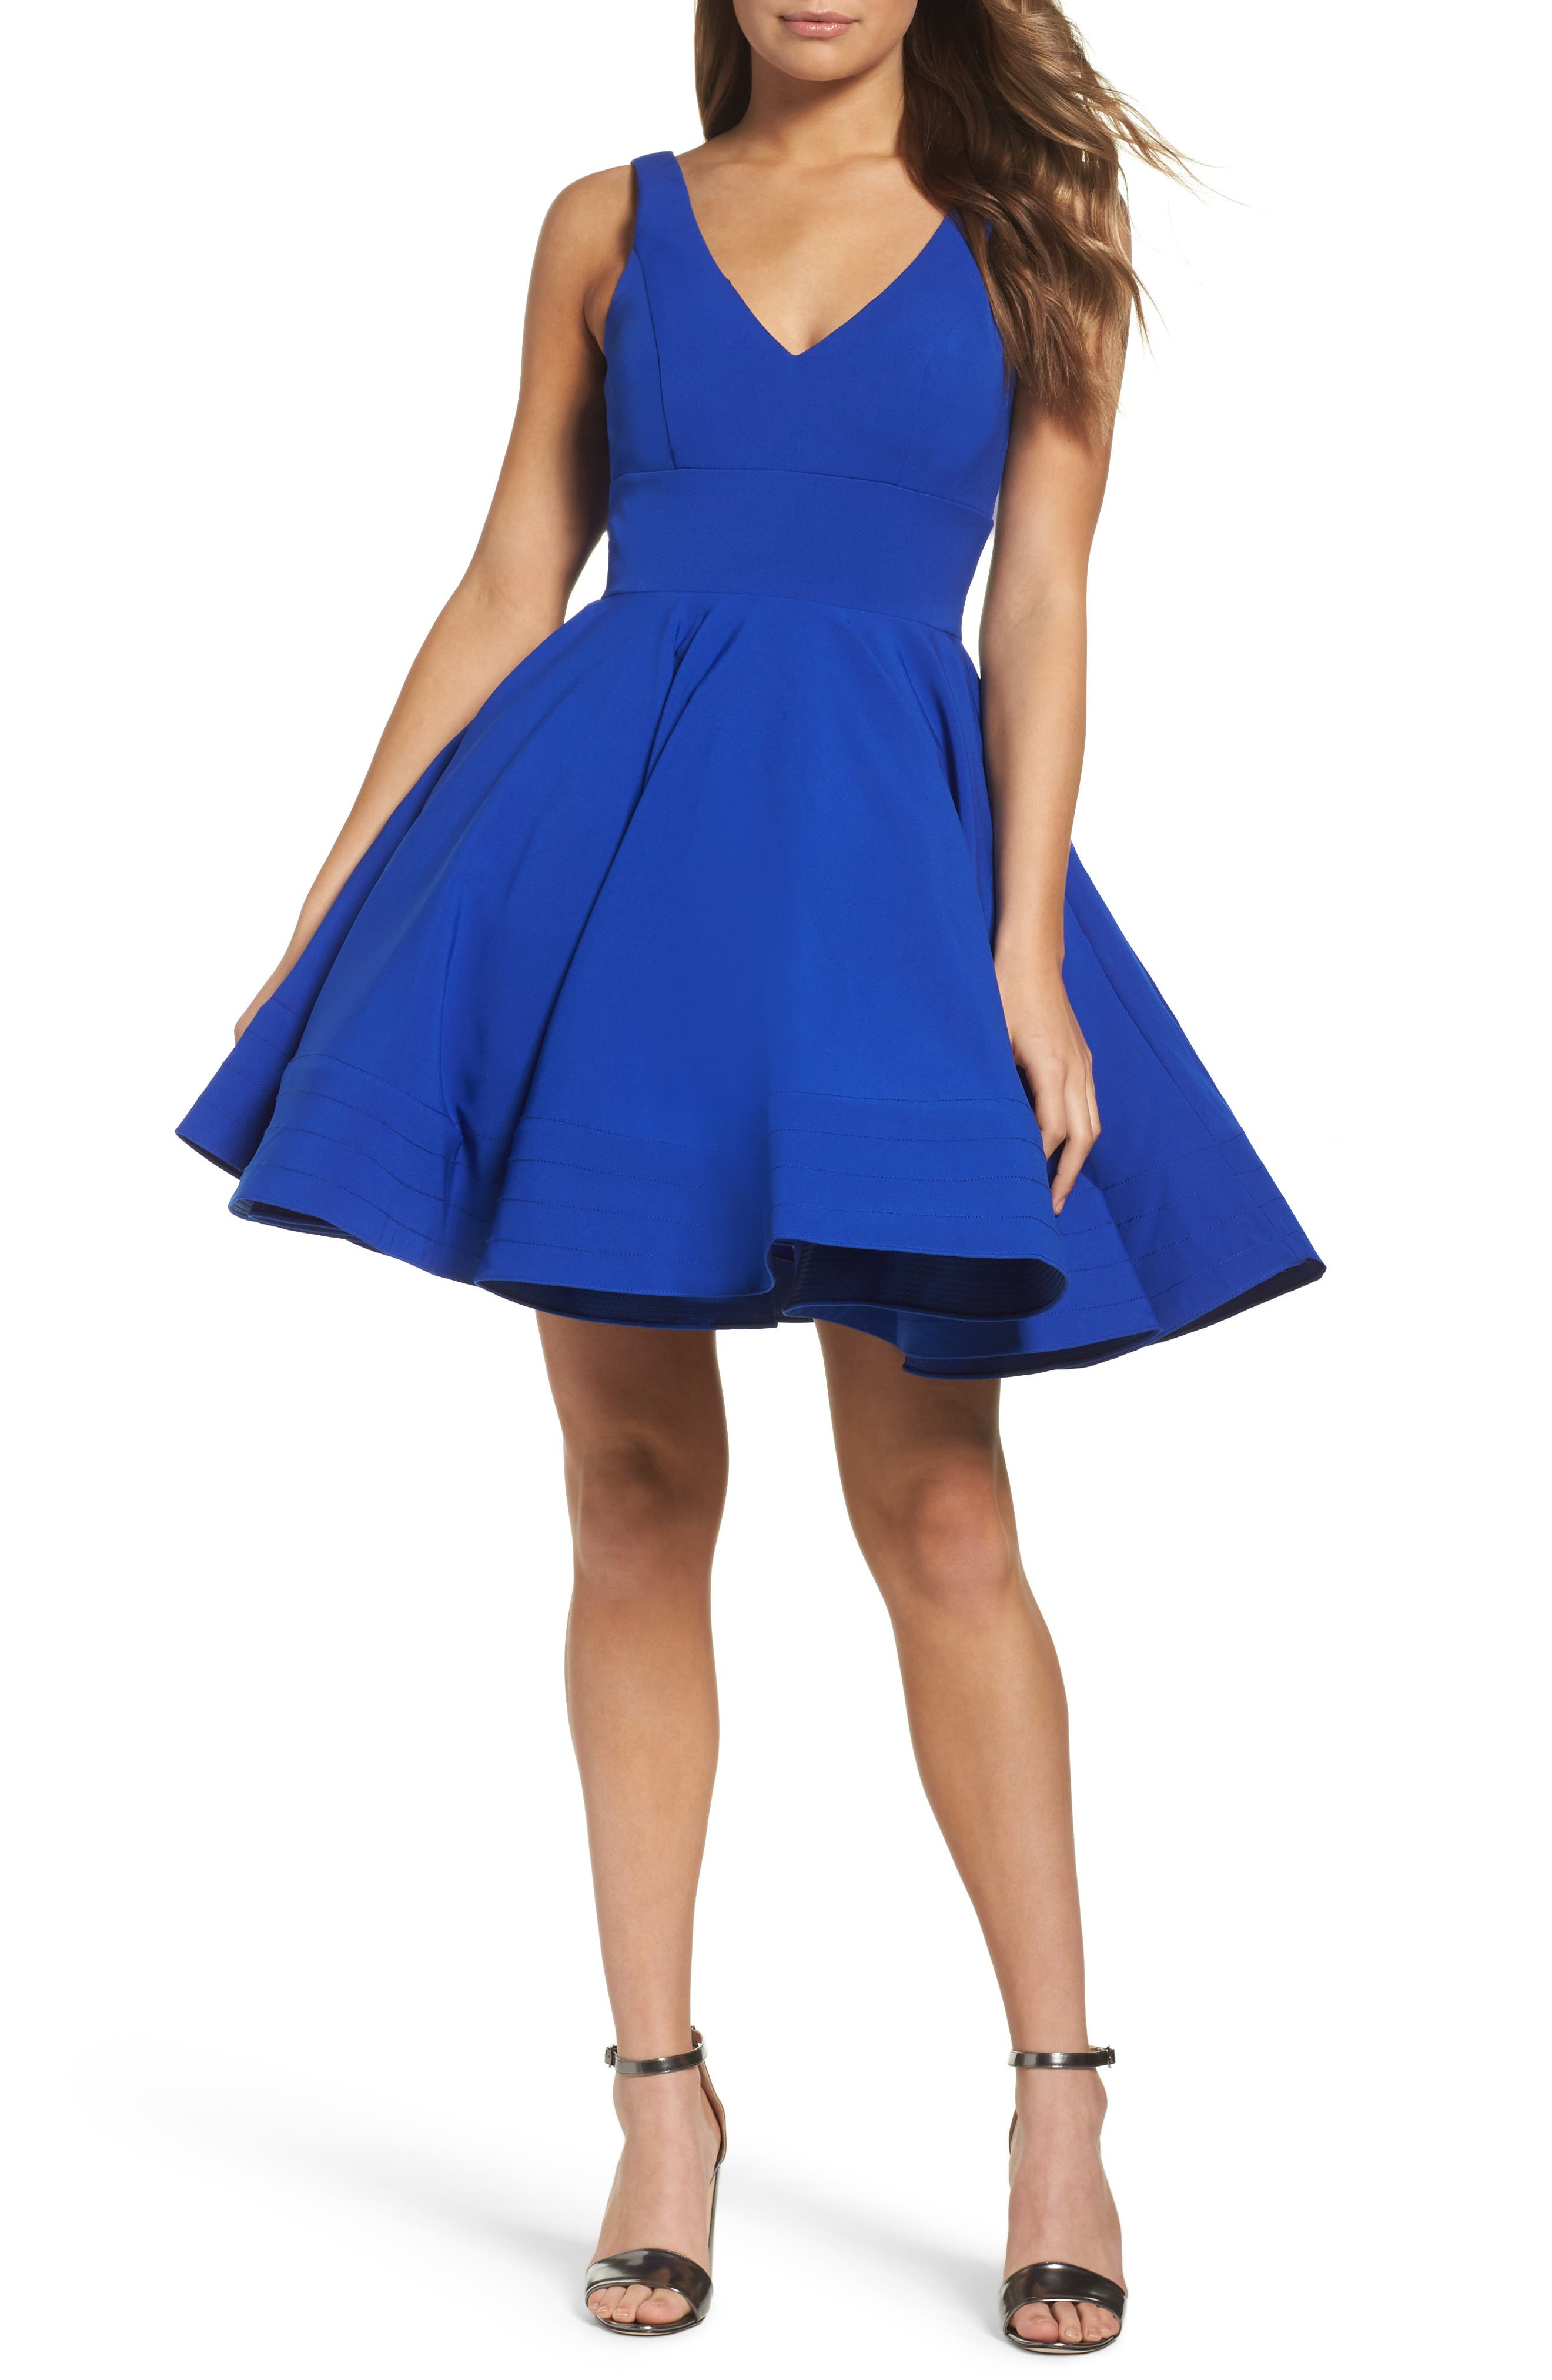 Main Image - Ieena for Mac Duggal Double V-Neck Fit & Flare Party Dress